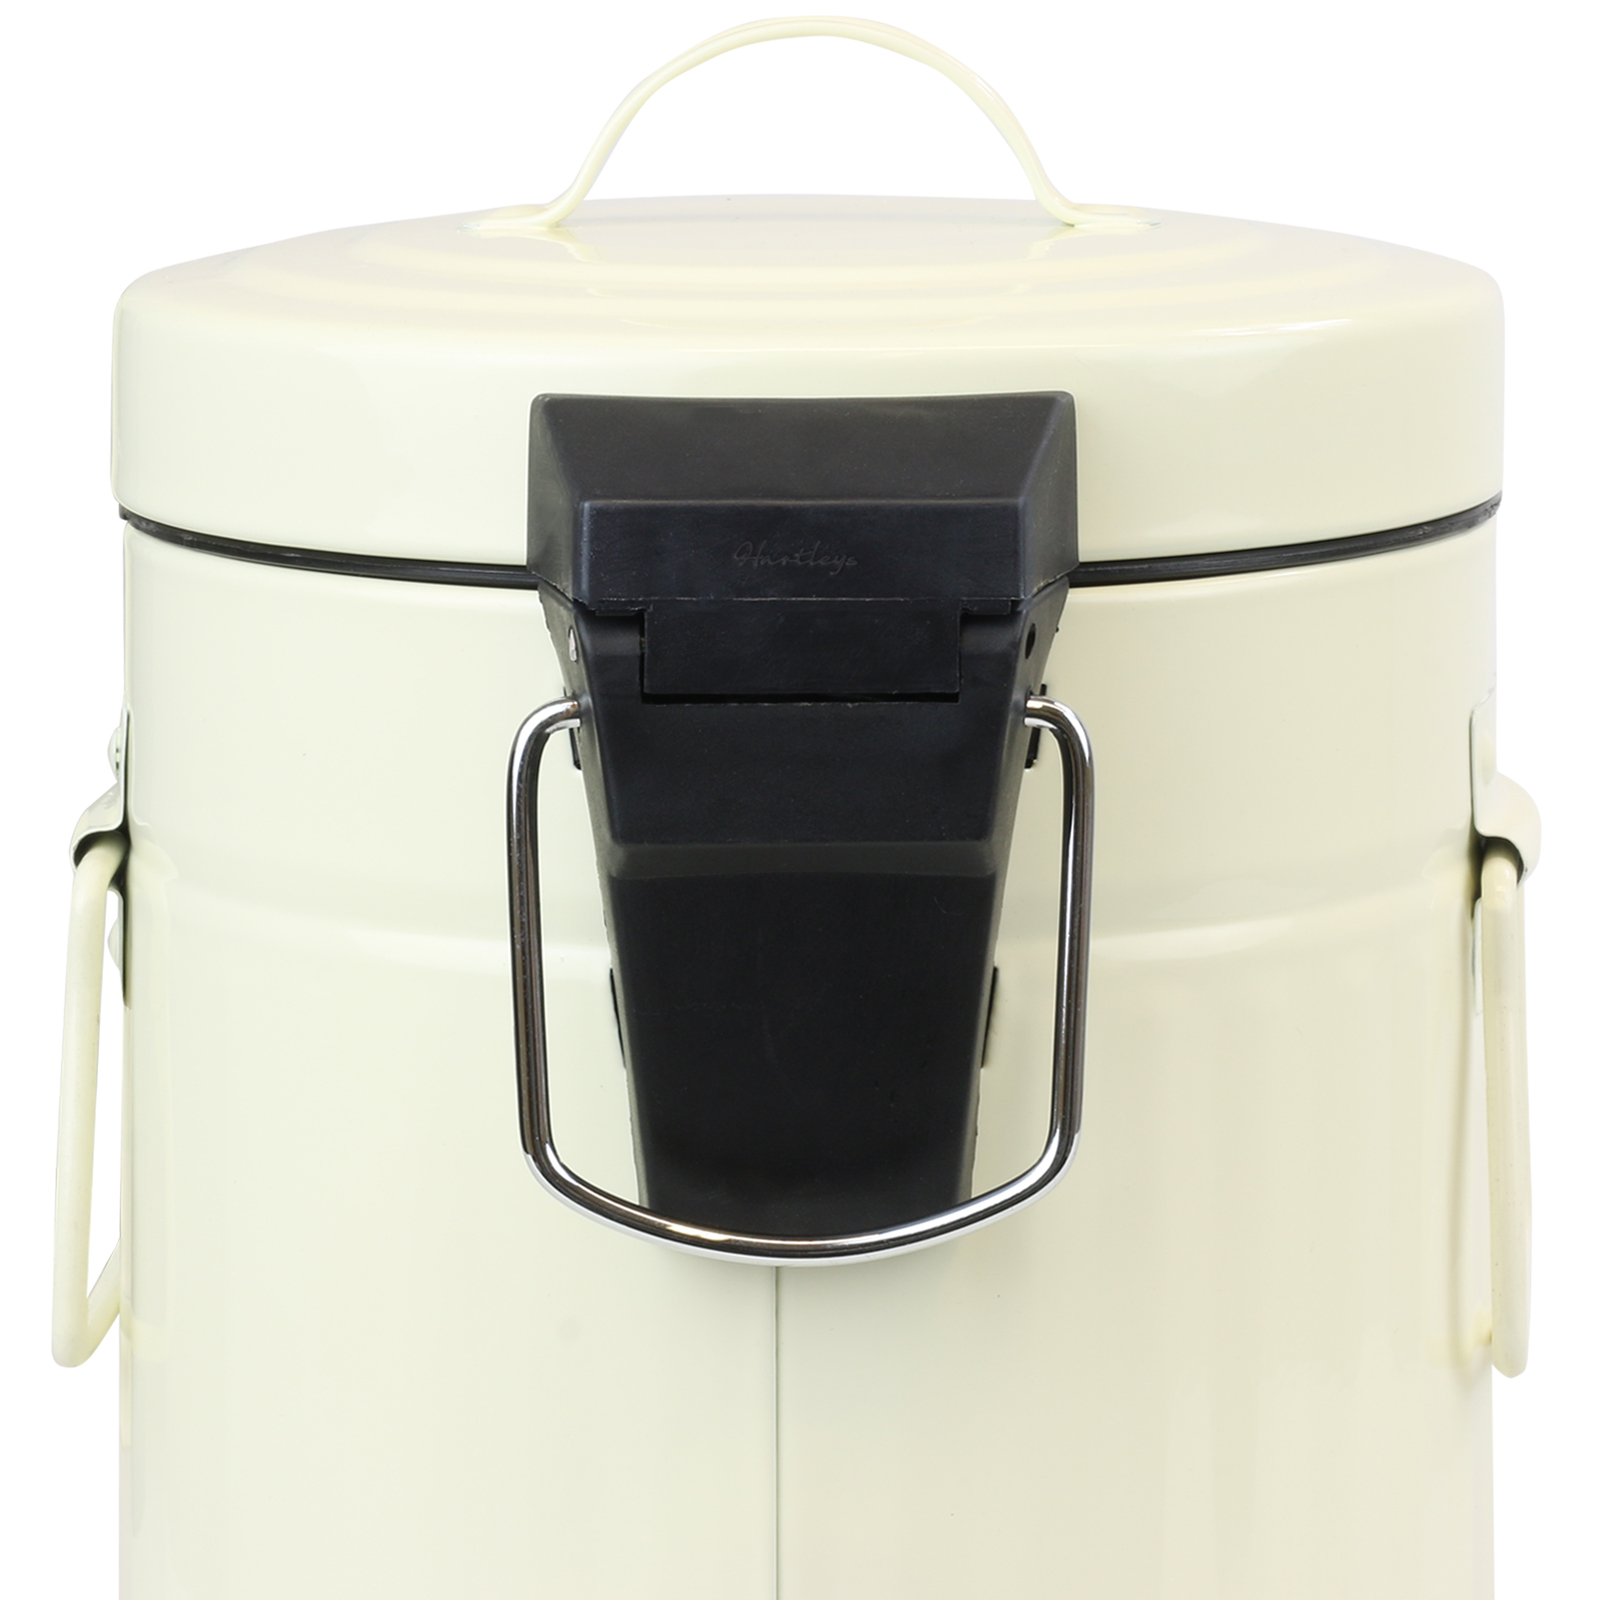 HARTLEYS CREAM METAL BATHROOM PEDAL BIN AND TOILET BRUSH